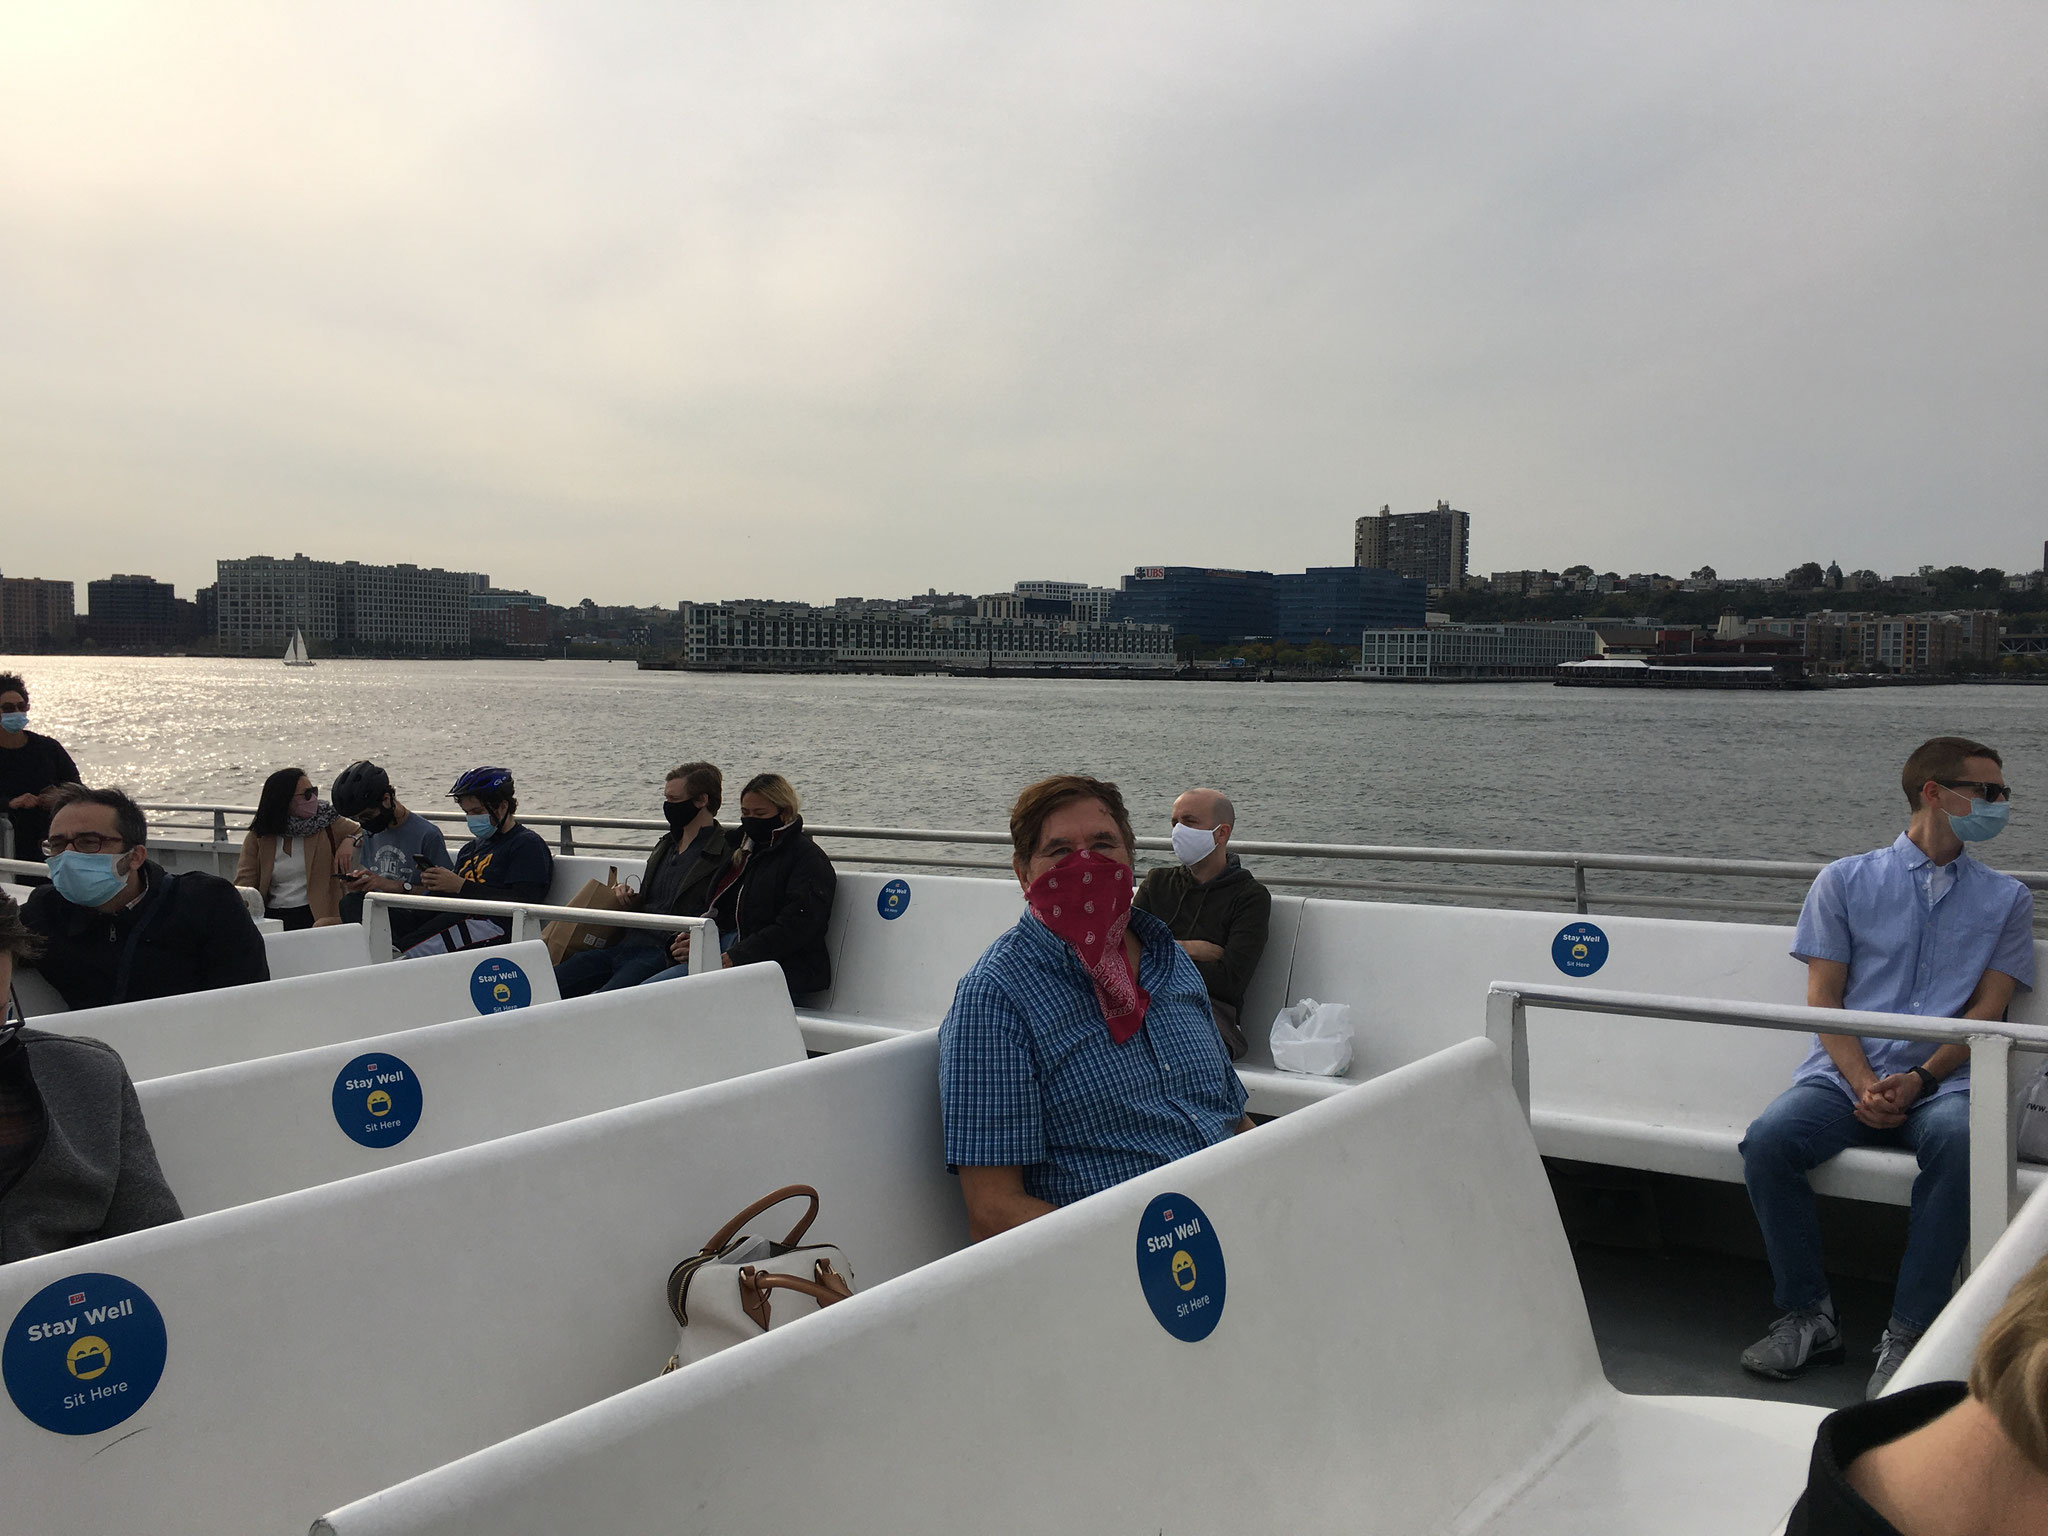 The Bandit, 23, on the Hudson River Ferry, NJ 10-10-20